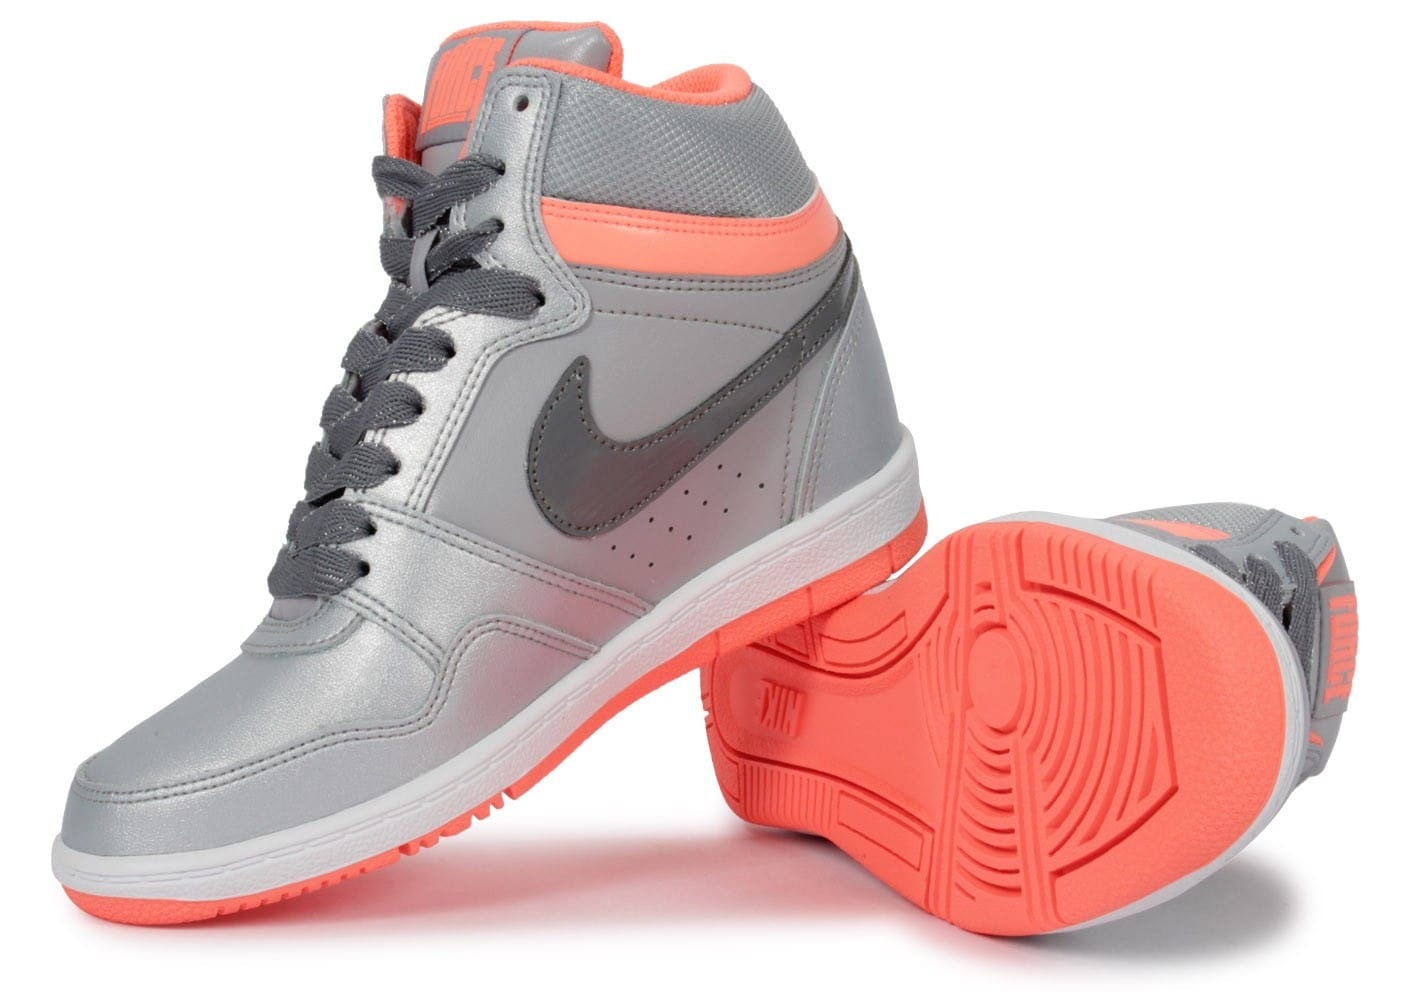 Nike Force Sky Compensée Grise - Chaussures Chaussures - Chausport 9ce04b20323d